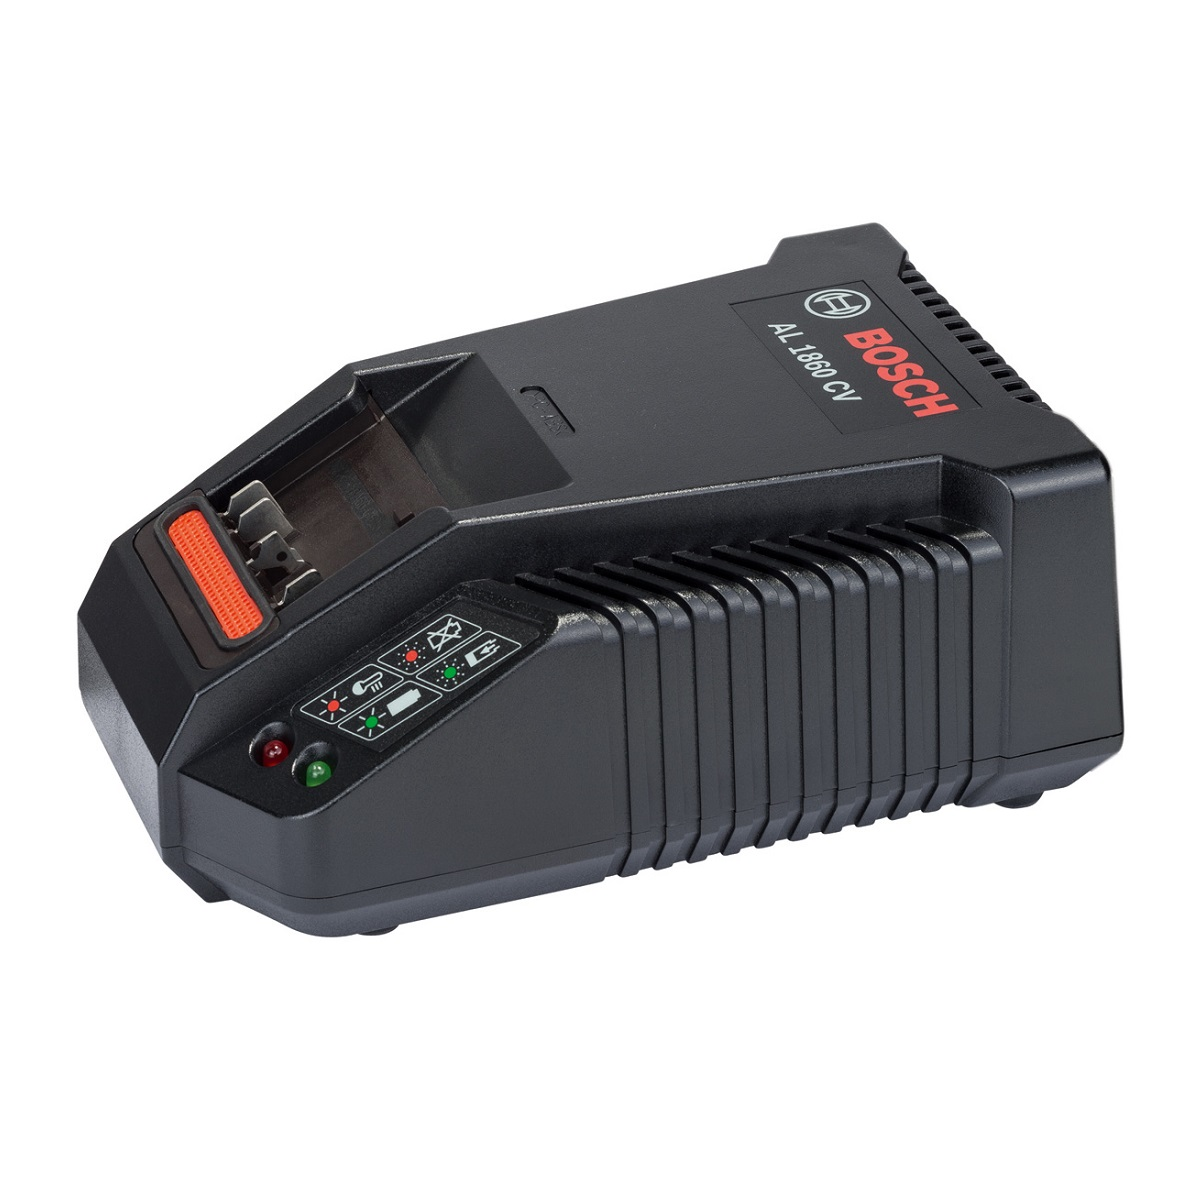 BOSCH AL1860CV 18V BATTERY CHARGER 240V